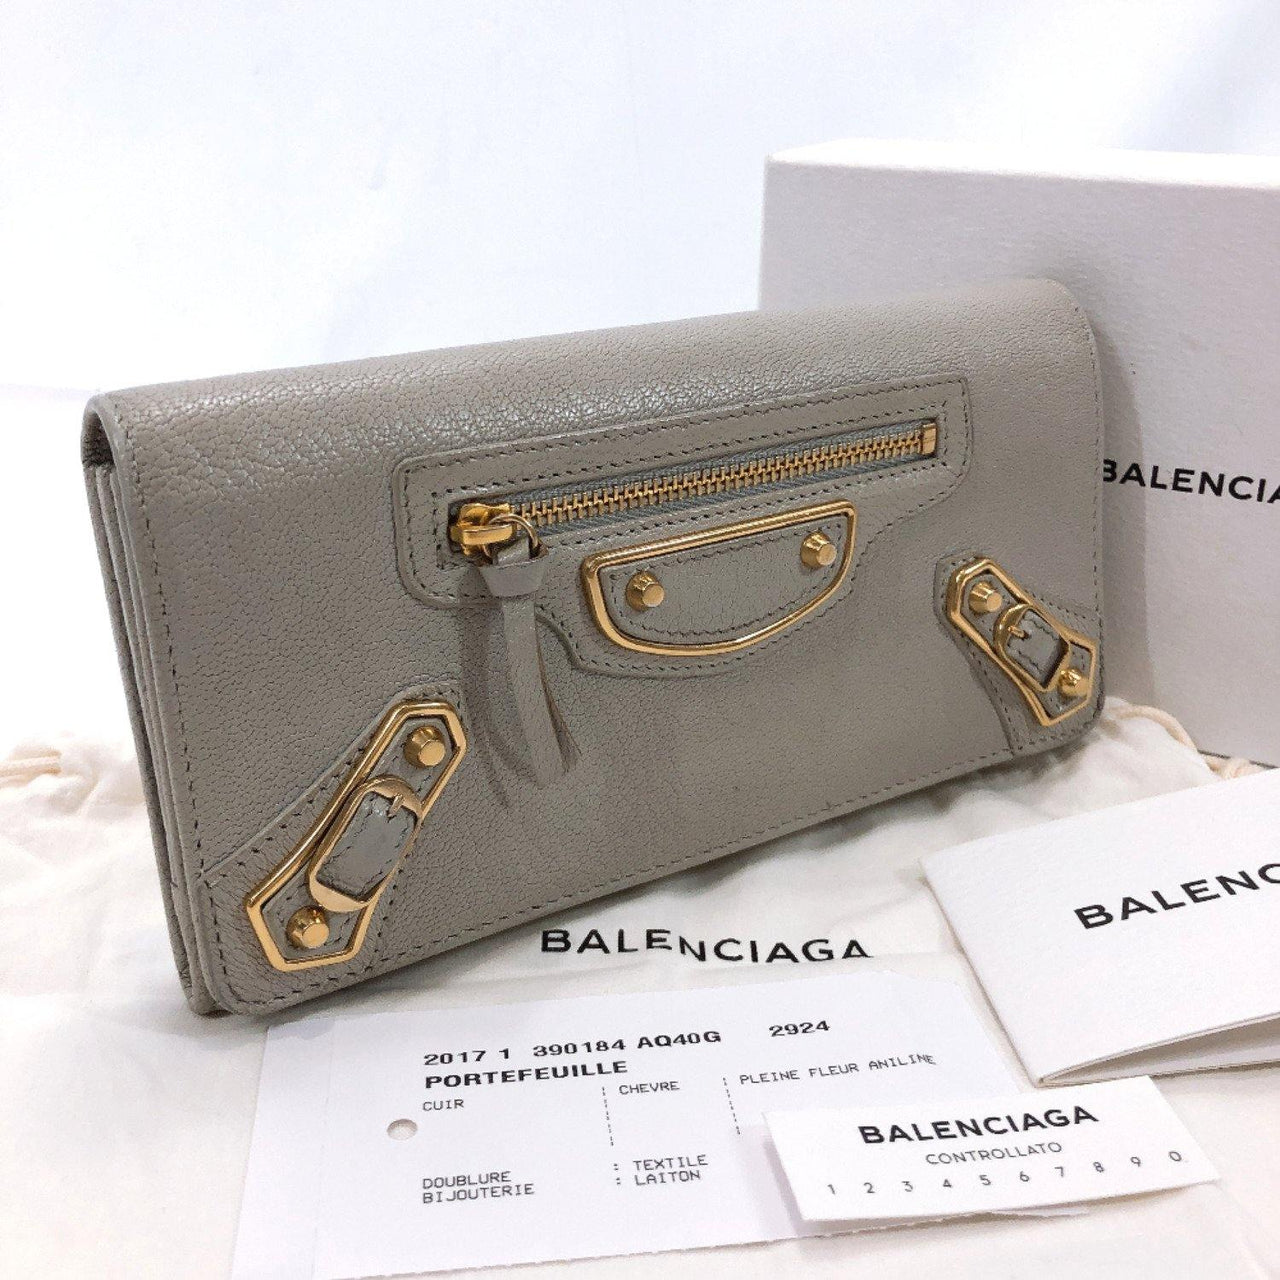 BALENCIAGA purse 390184 AQ40G Classic leather gray gold Women Used - JP-BRANDS.com